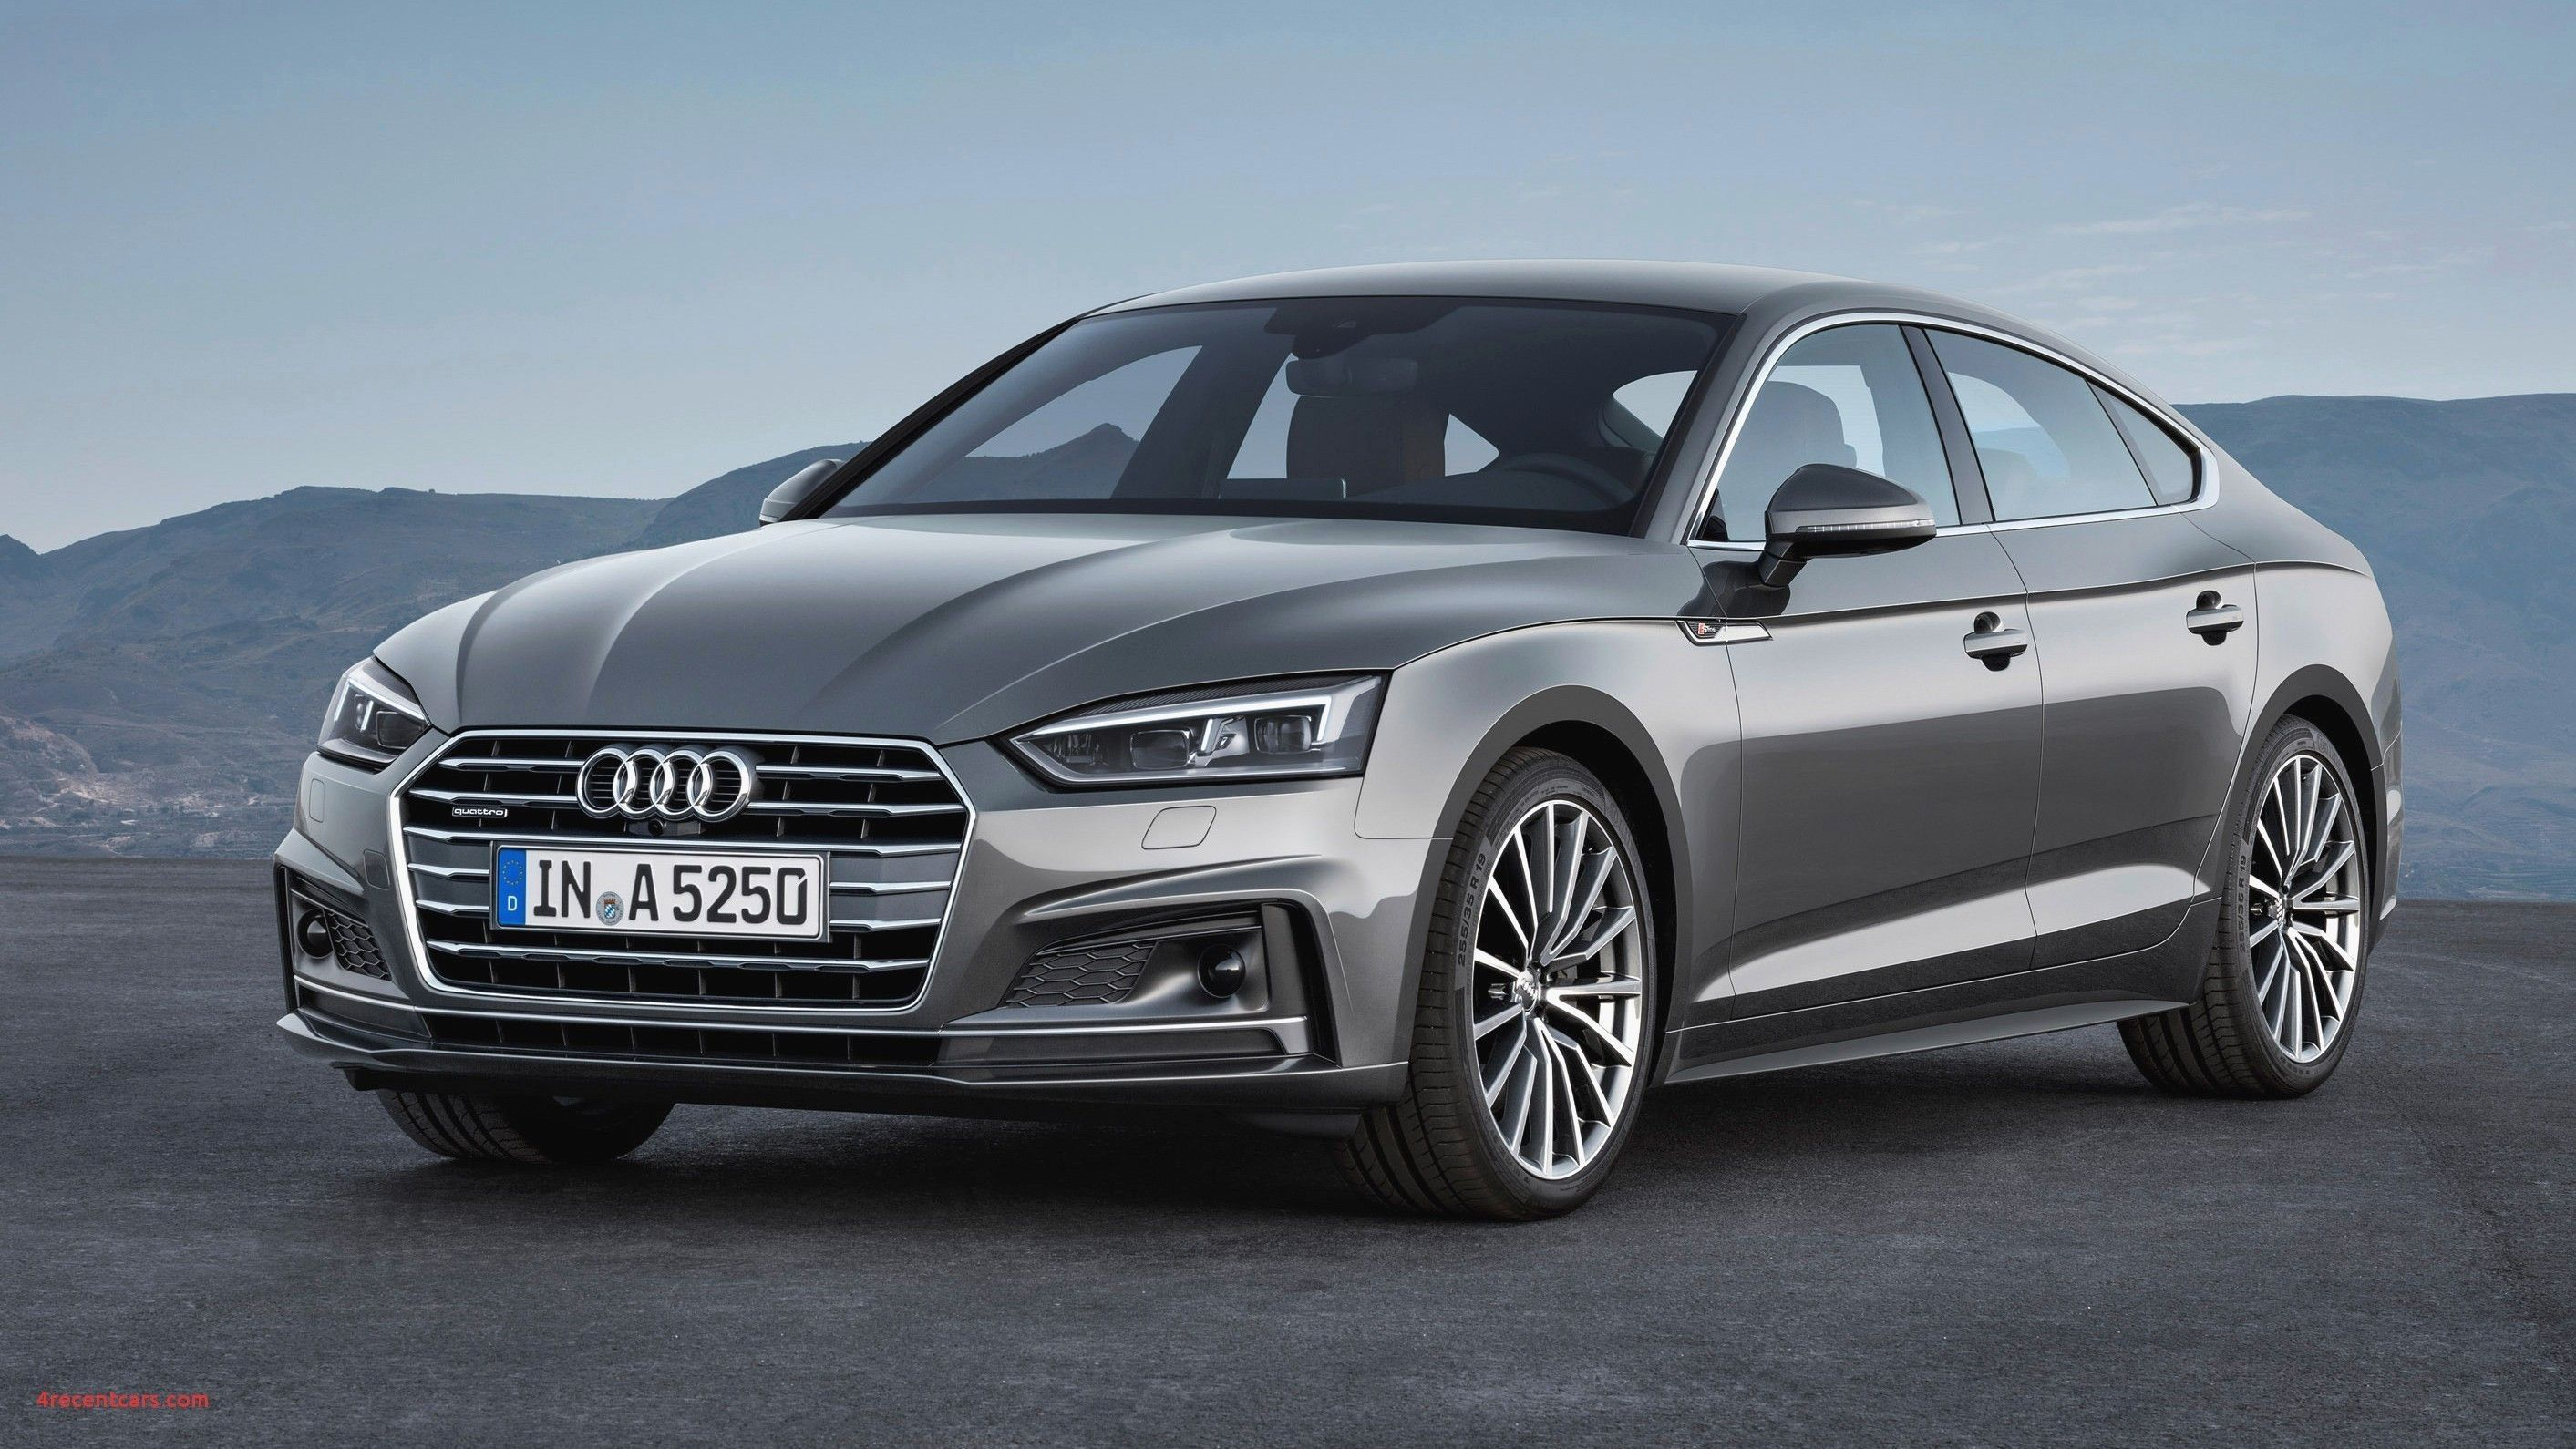 Best 2020 Audi S5 Price And Release Date A5 Sportback Audi A5 Sportback Audi A5